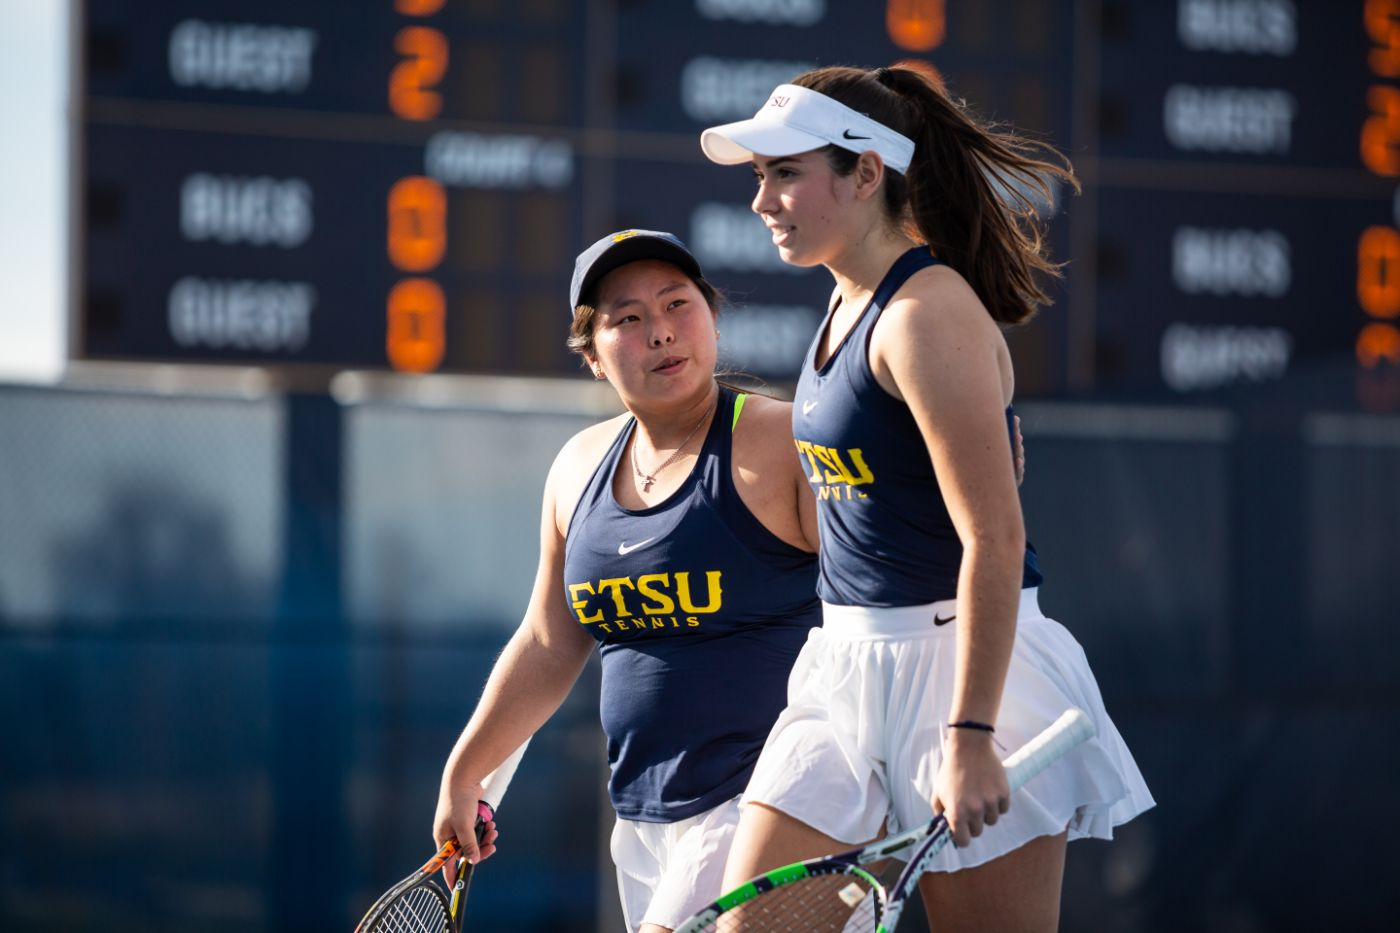 Bucs win doubles point, but fall to VCU, 4-3